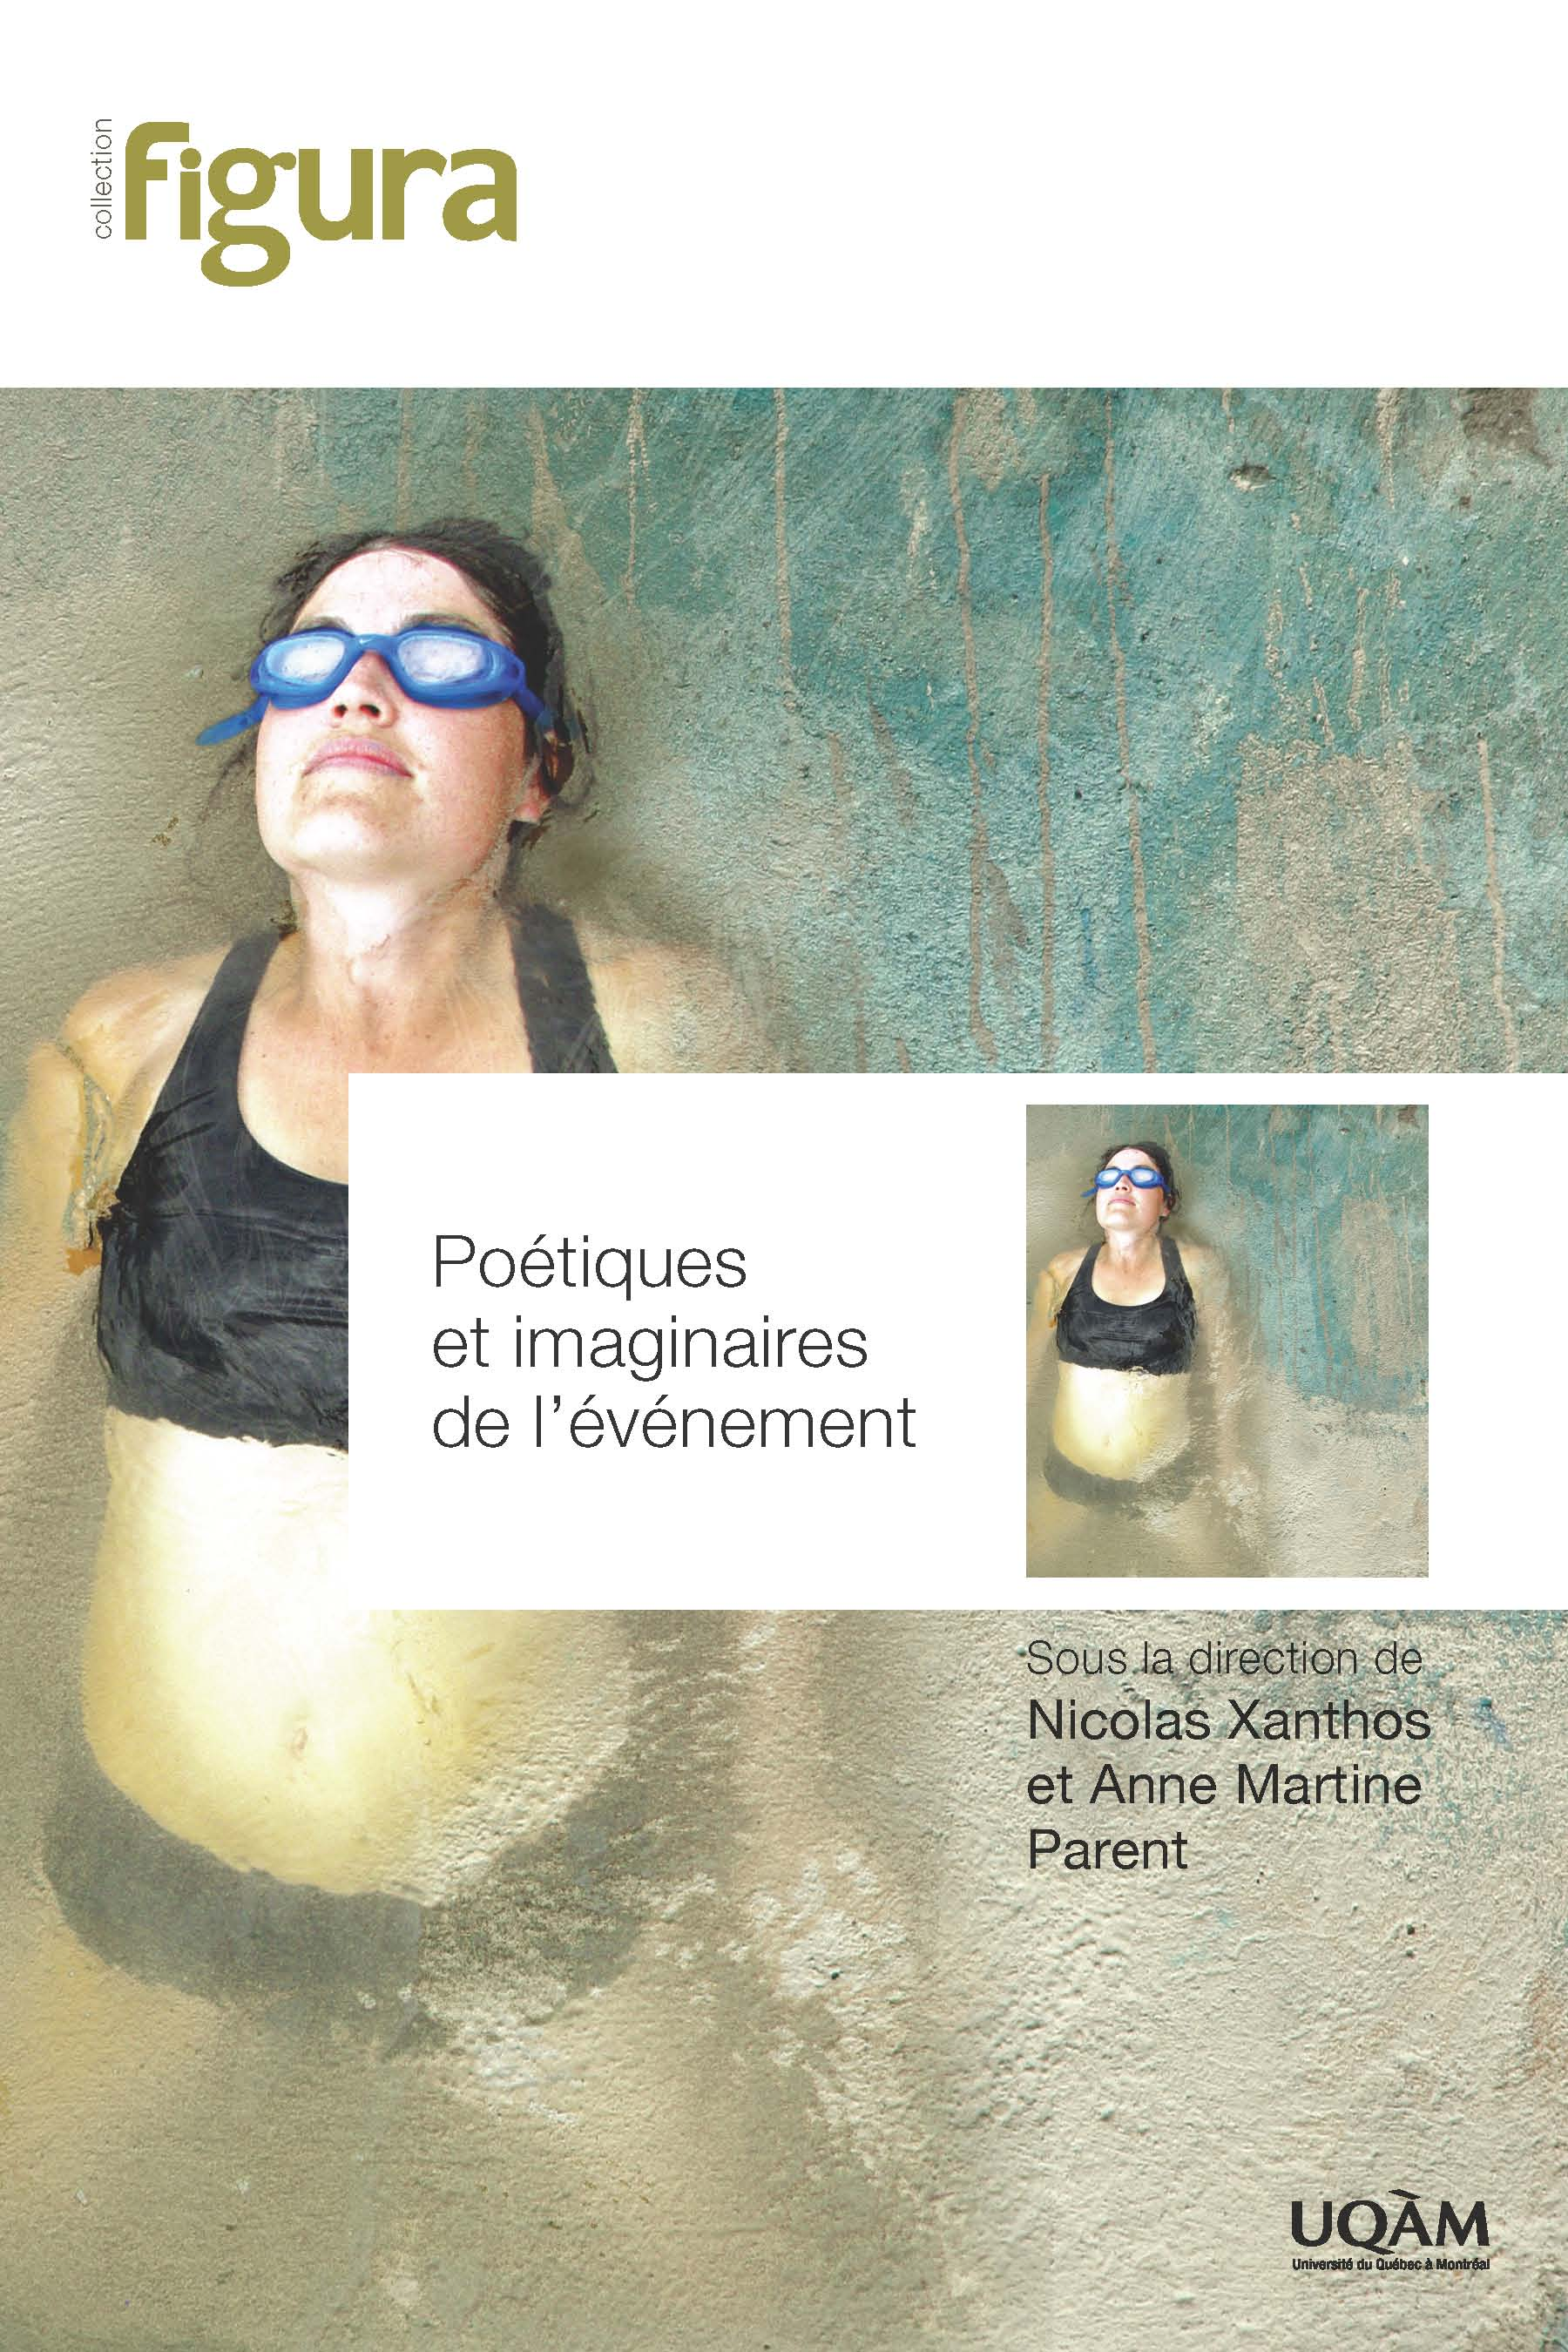 https://i0.wp.com/figura.uqam.ca/sites/figura.uqam.ca/files/images/biblio/Couv28_page%20droite.jpg